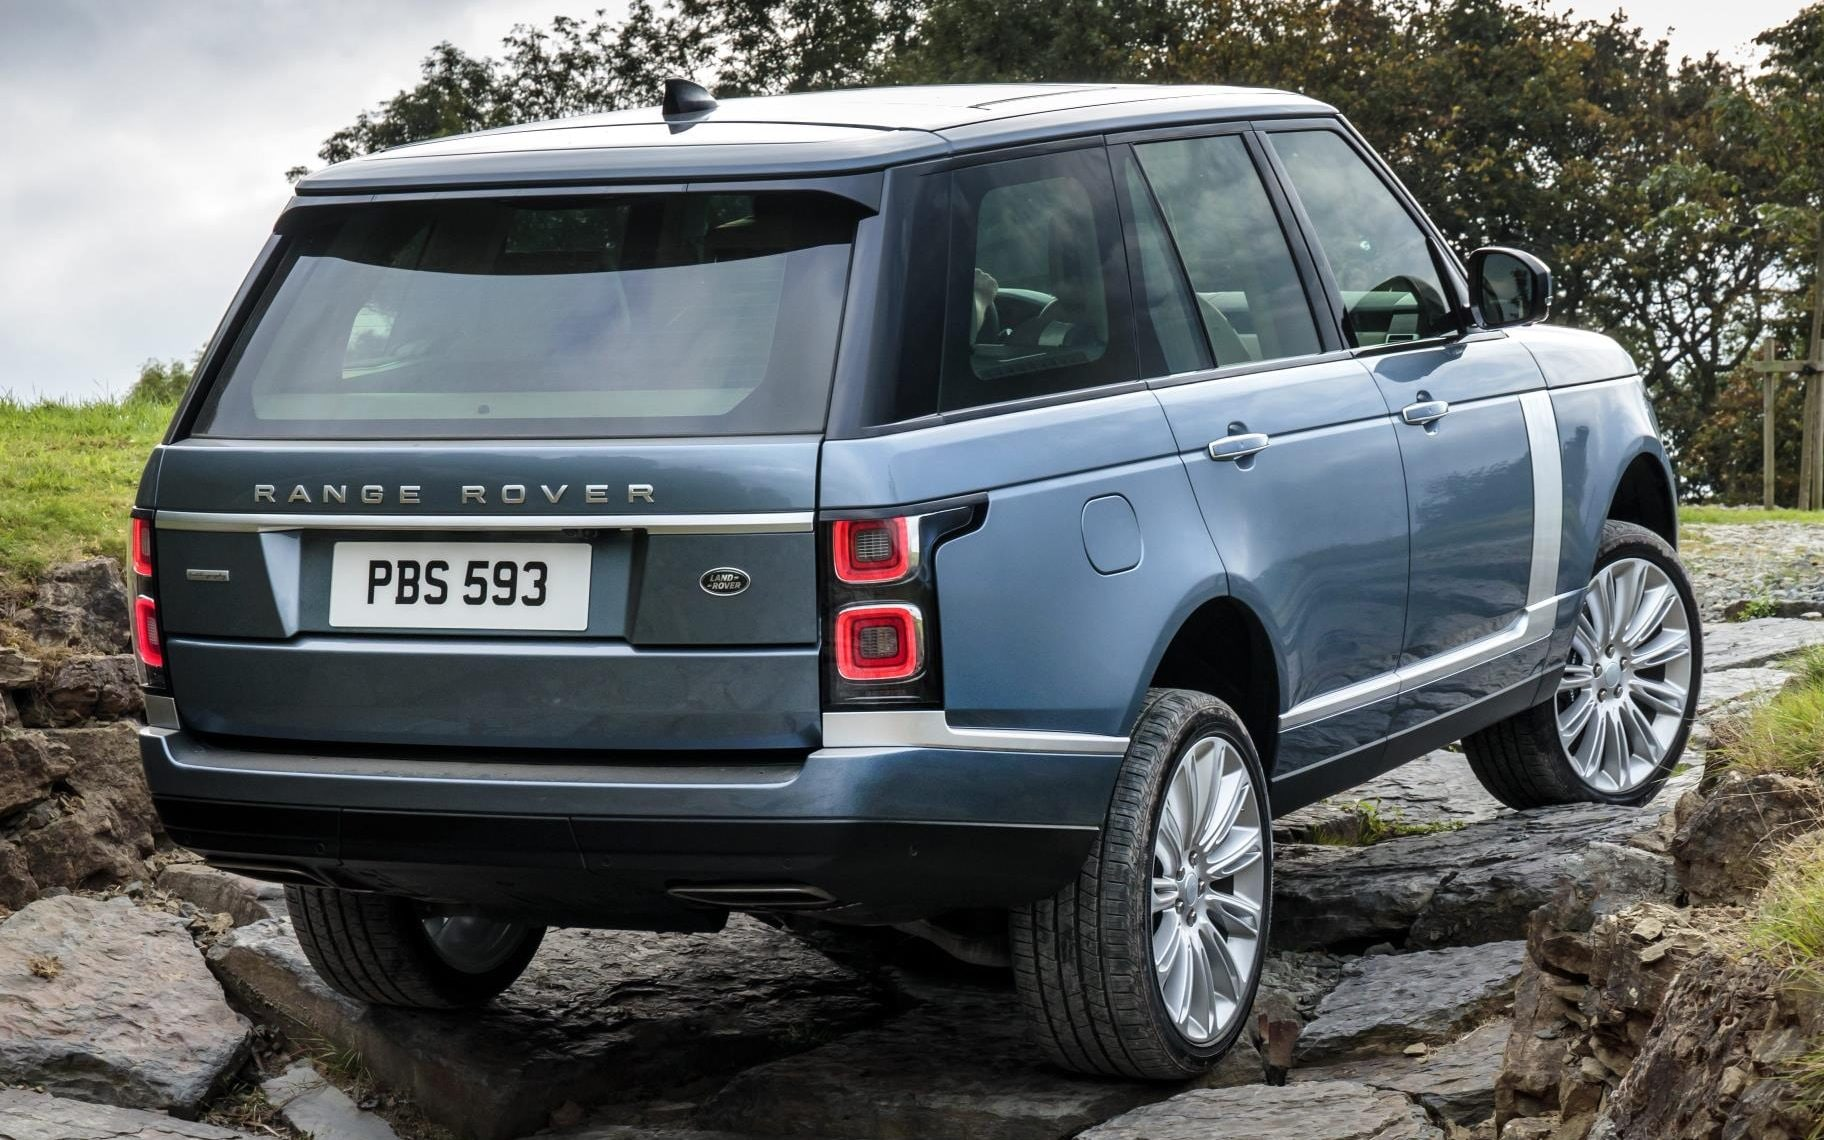 New 2018 P400e Range Rover plug in hybrid in pictures Cars